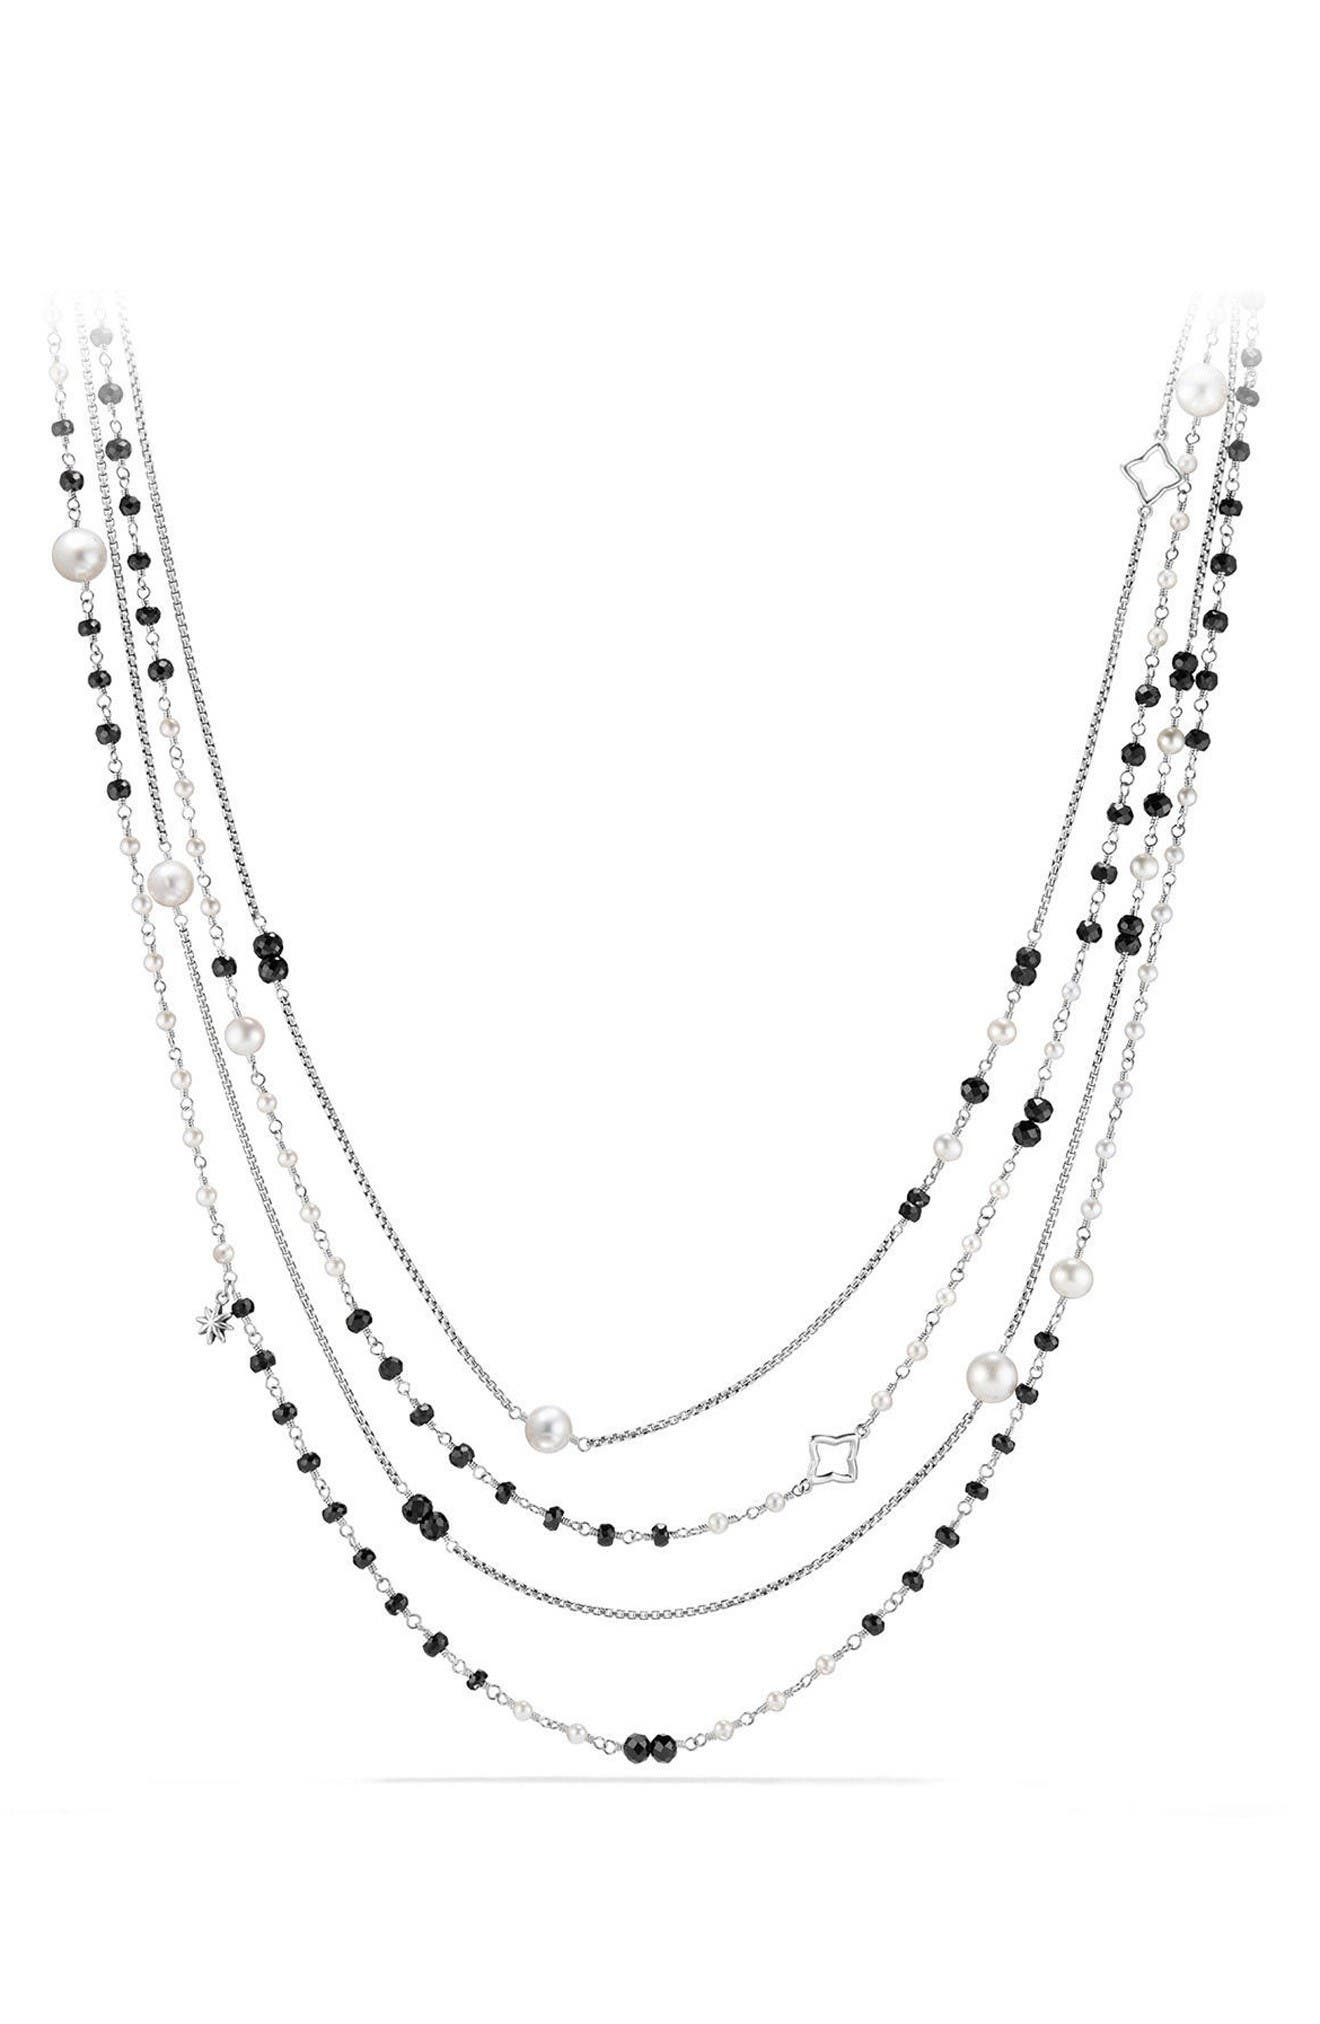 Alternate Image 1 Selected - David Yurman Solari Two Row Pearl Chain Necklace